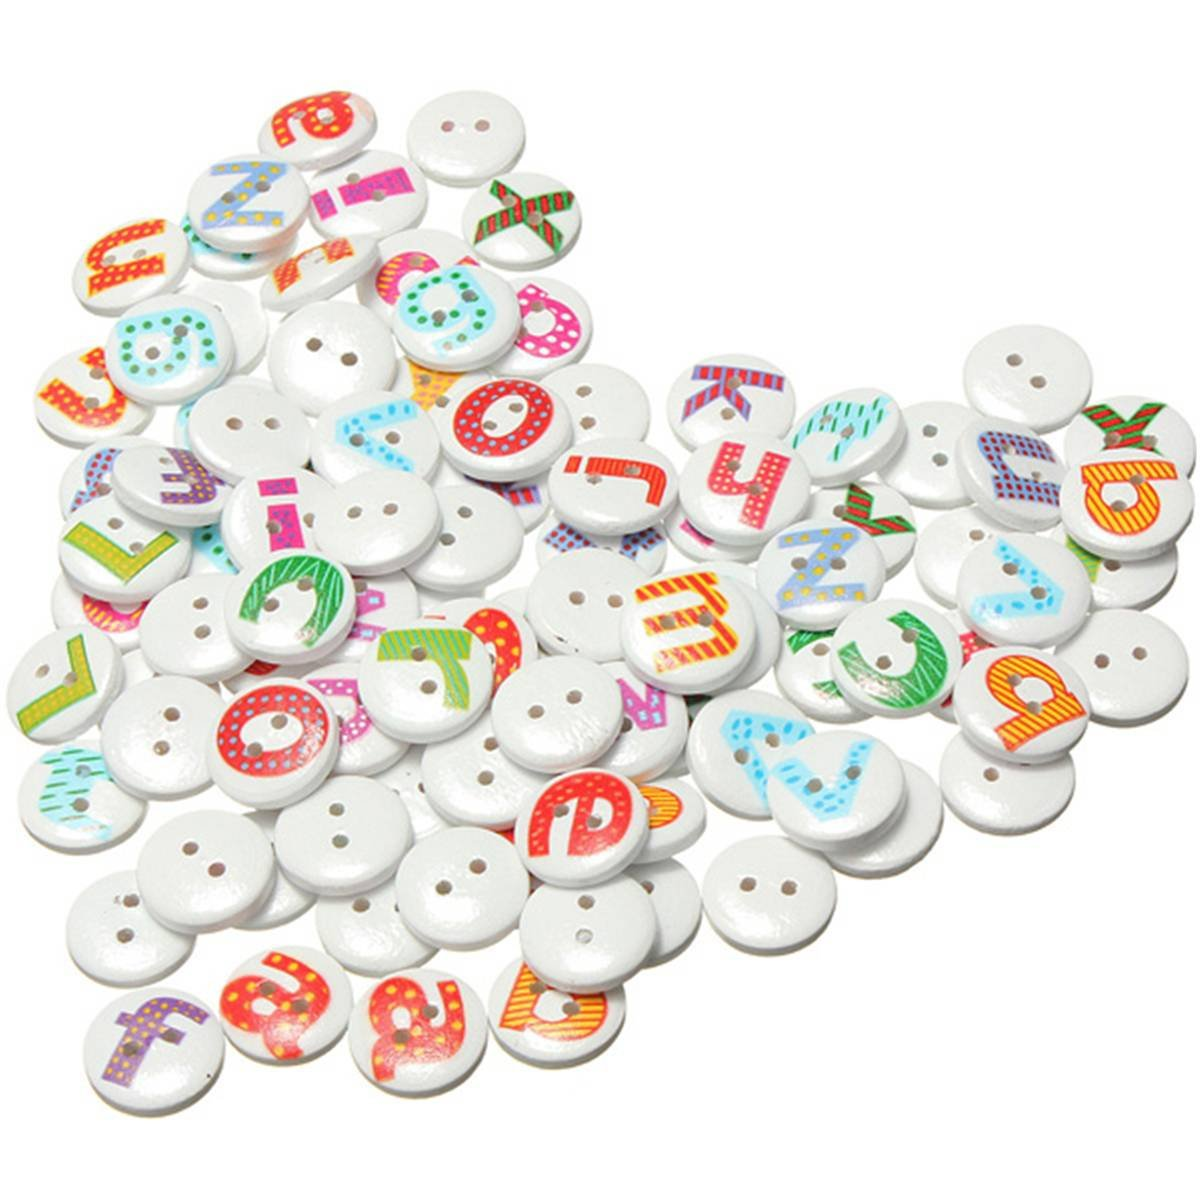 GSFY-100Pcs Mixed Painted Letter Alphabet Wooden Sewing Button Scrapbooking